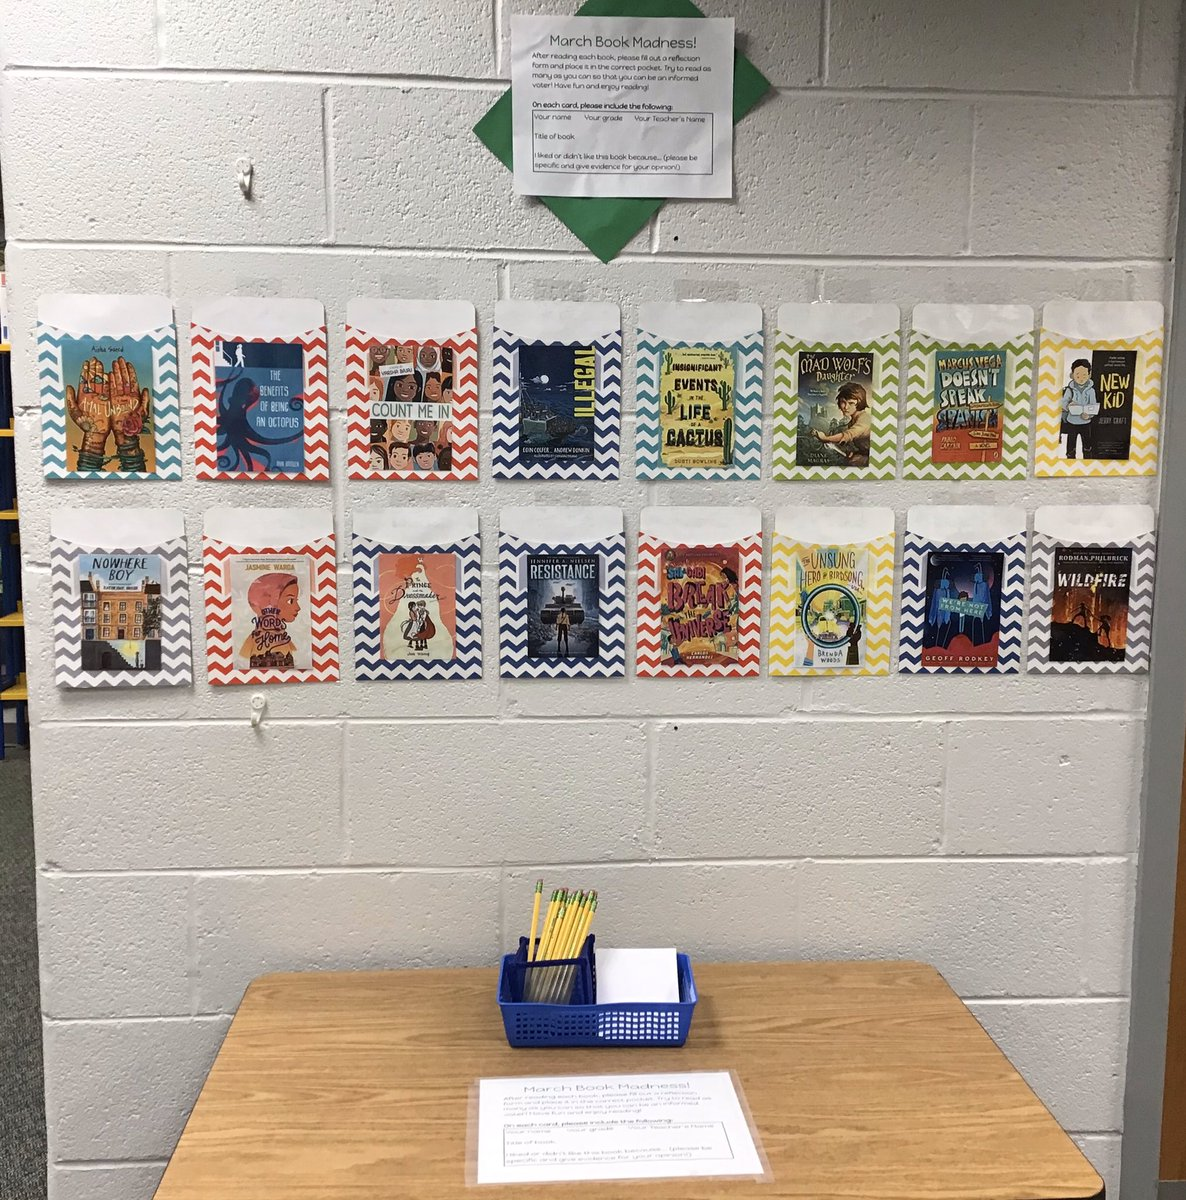 ATS Stars: get ready to reflect on March Book Madness books! <a target='_blank' href='http://twitter.com/APSLibrarians'>@APSLibrarians</a> <a target='_blank' href='http://twitter.com/APS_ATS'>@APS_ATS</a> <a target='_blank' href='http://twitter.com/APSLibraries'>@APSLibraries</a> <a target='_blank' href='http://search.twitter.com/search?q=2020MBM'><a target='_blank' href='https://twitter.com/hashtag/2020MBM?src=hash'>#2020MBM</a></a> <a target='_blank' href='https://t.co/JwpjnIIkYC'>https://t.co/JwpjnIIkYC</a>